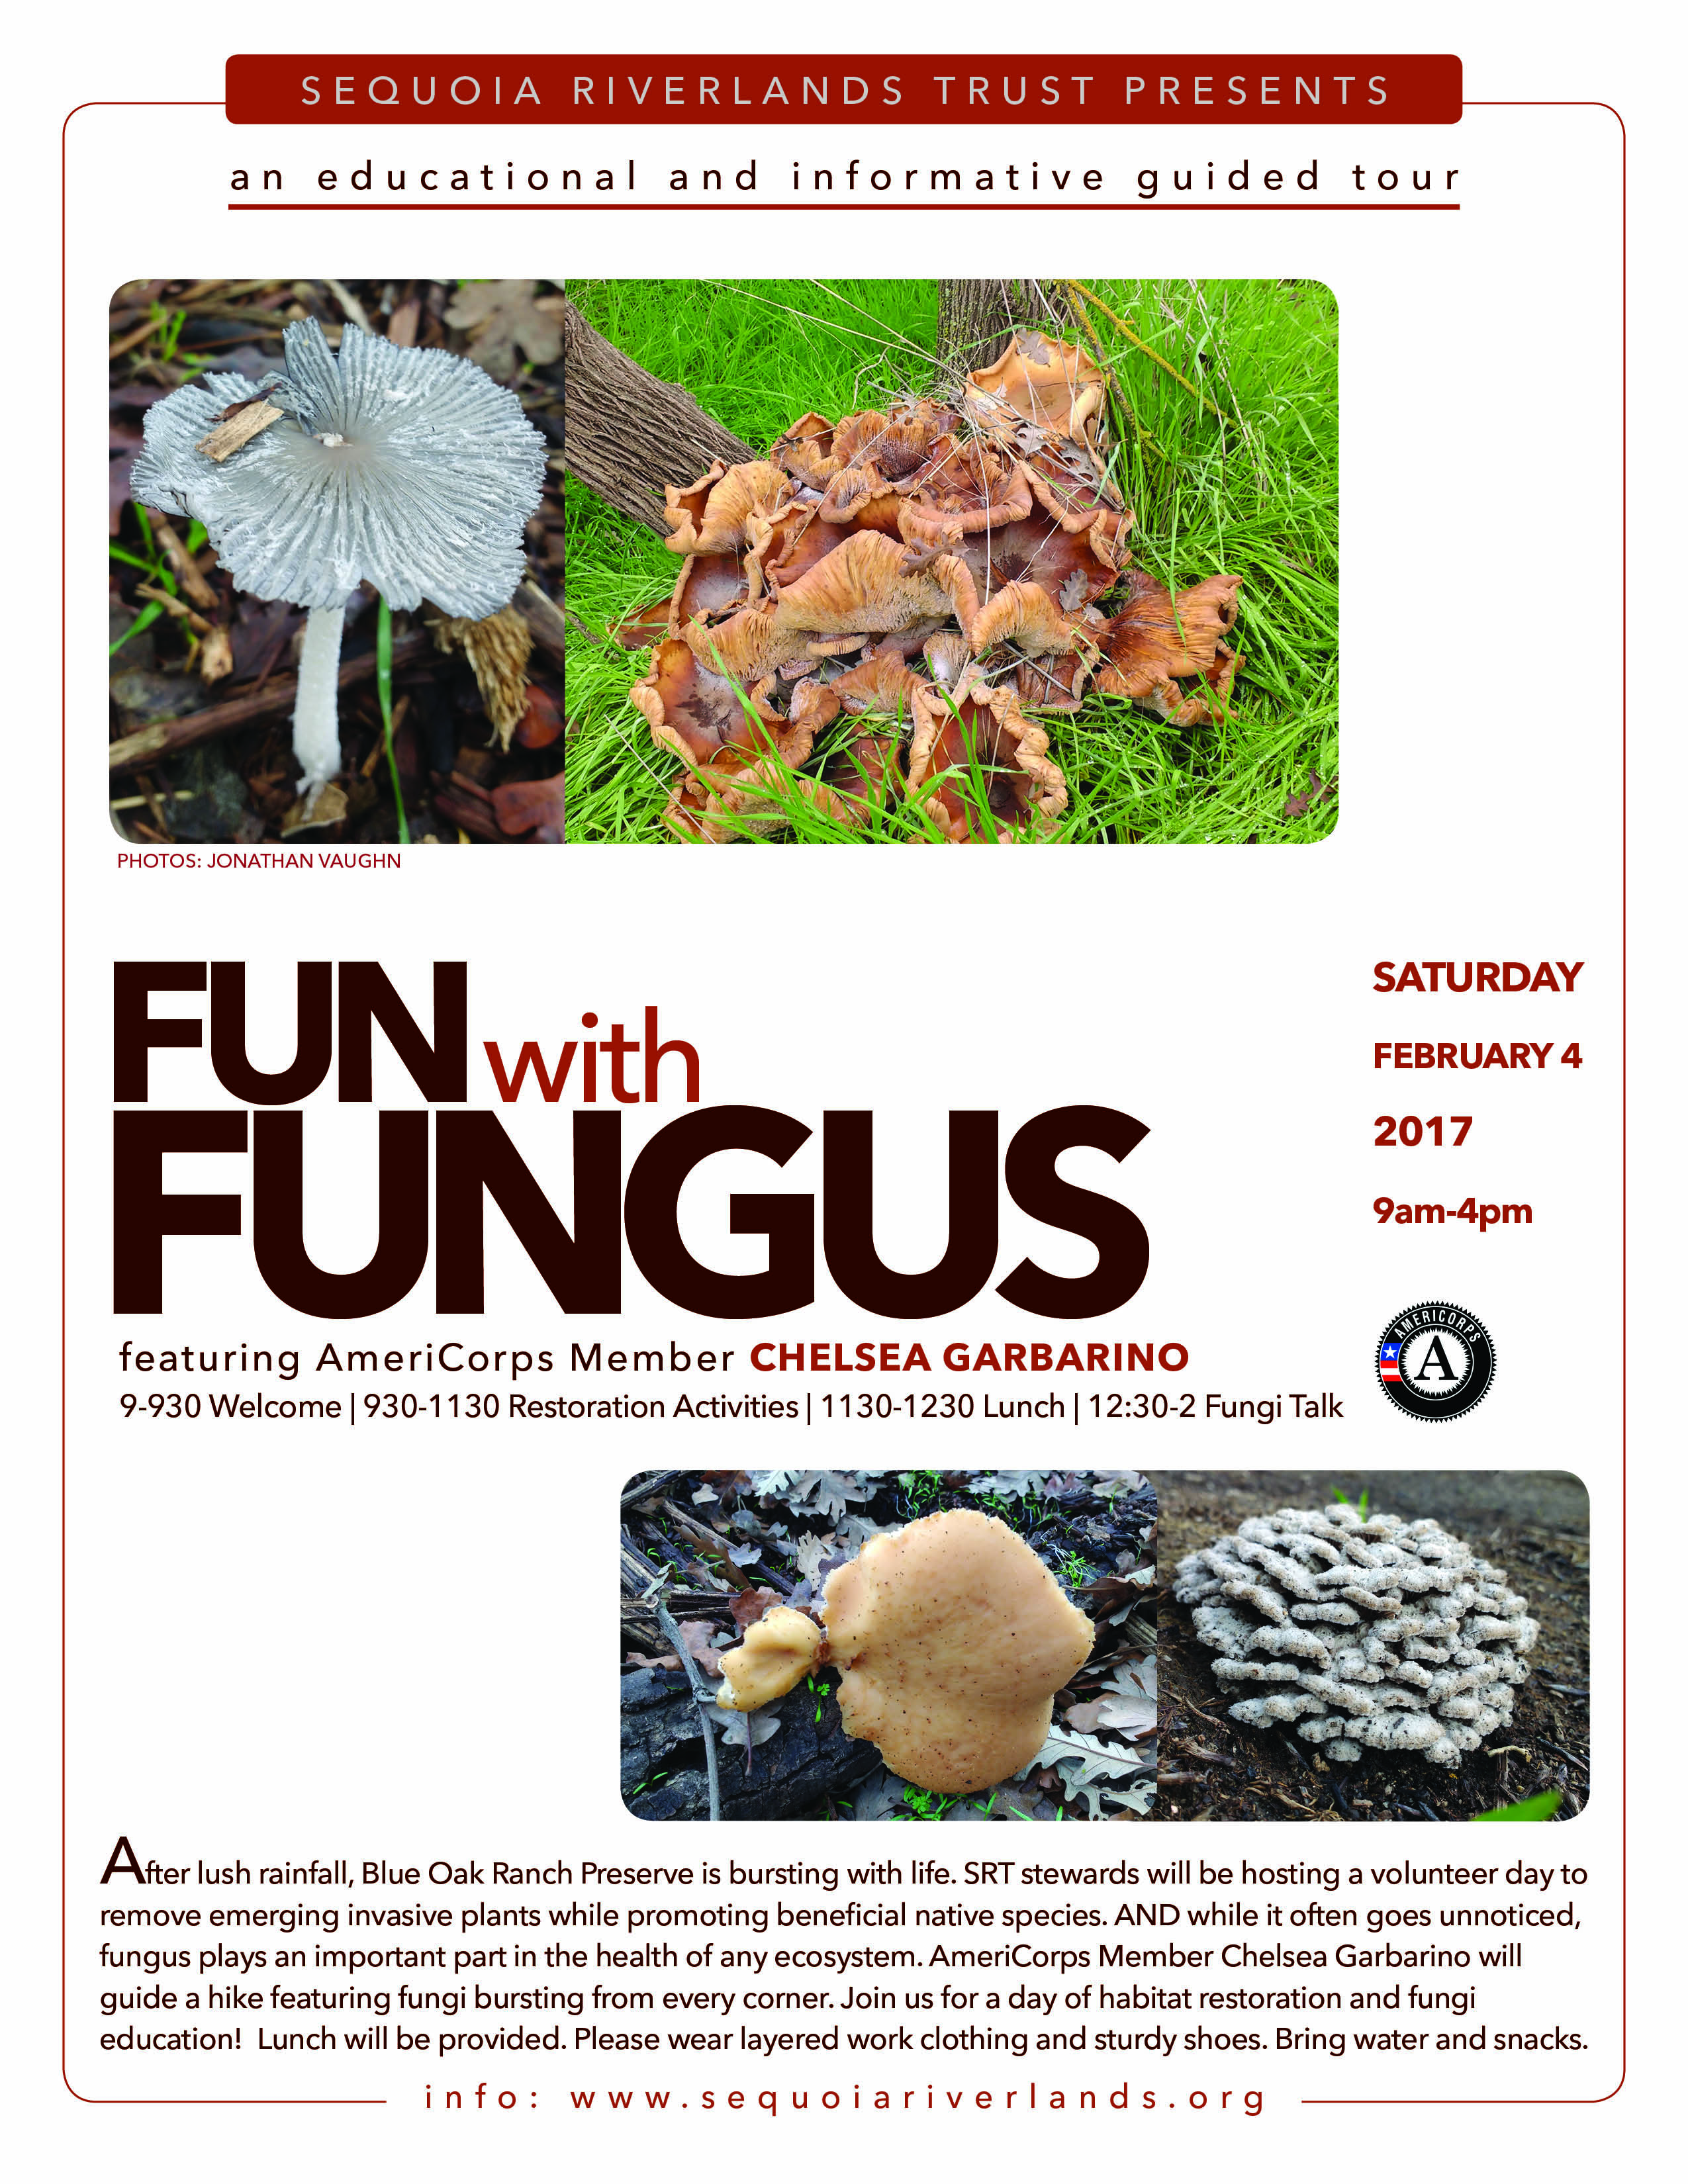 Fungi event at Blue Oak Ranch Preserve